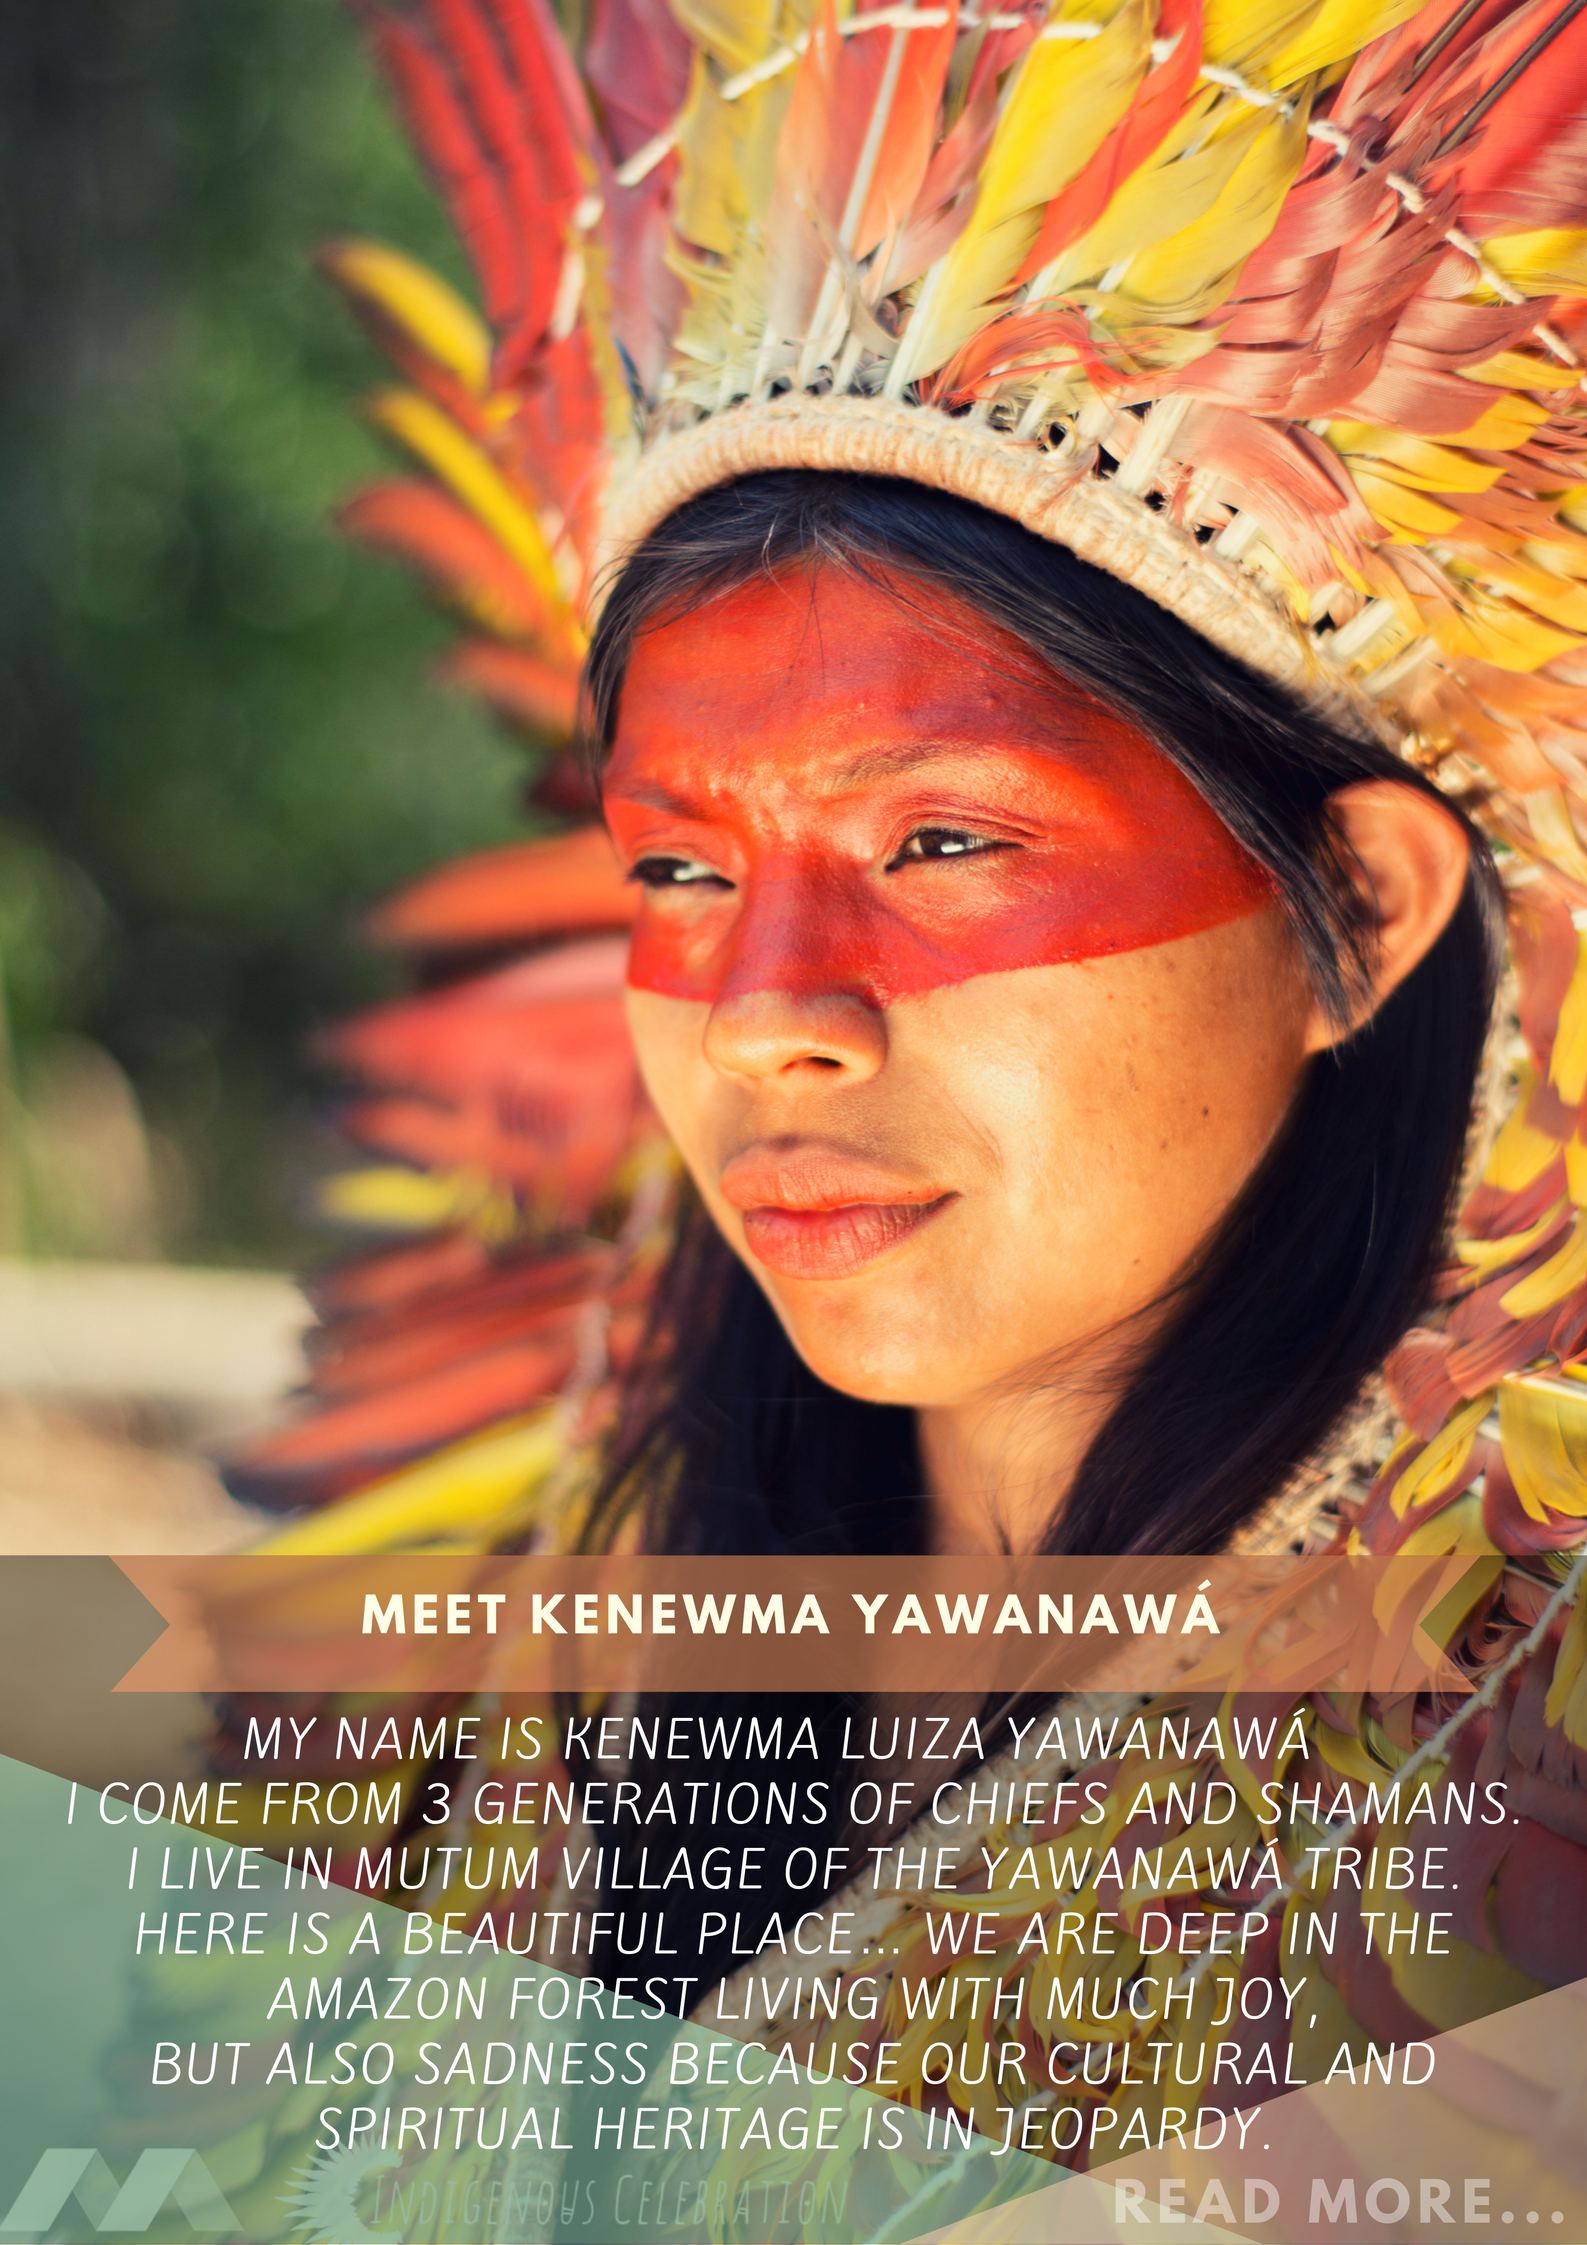 Promotional Flyers to introduce members of the Yawanawa tribe